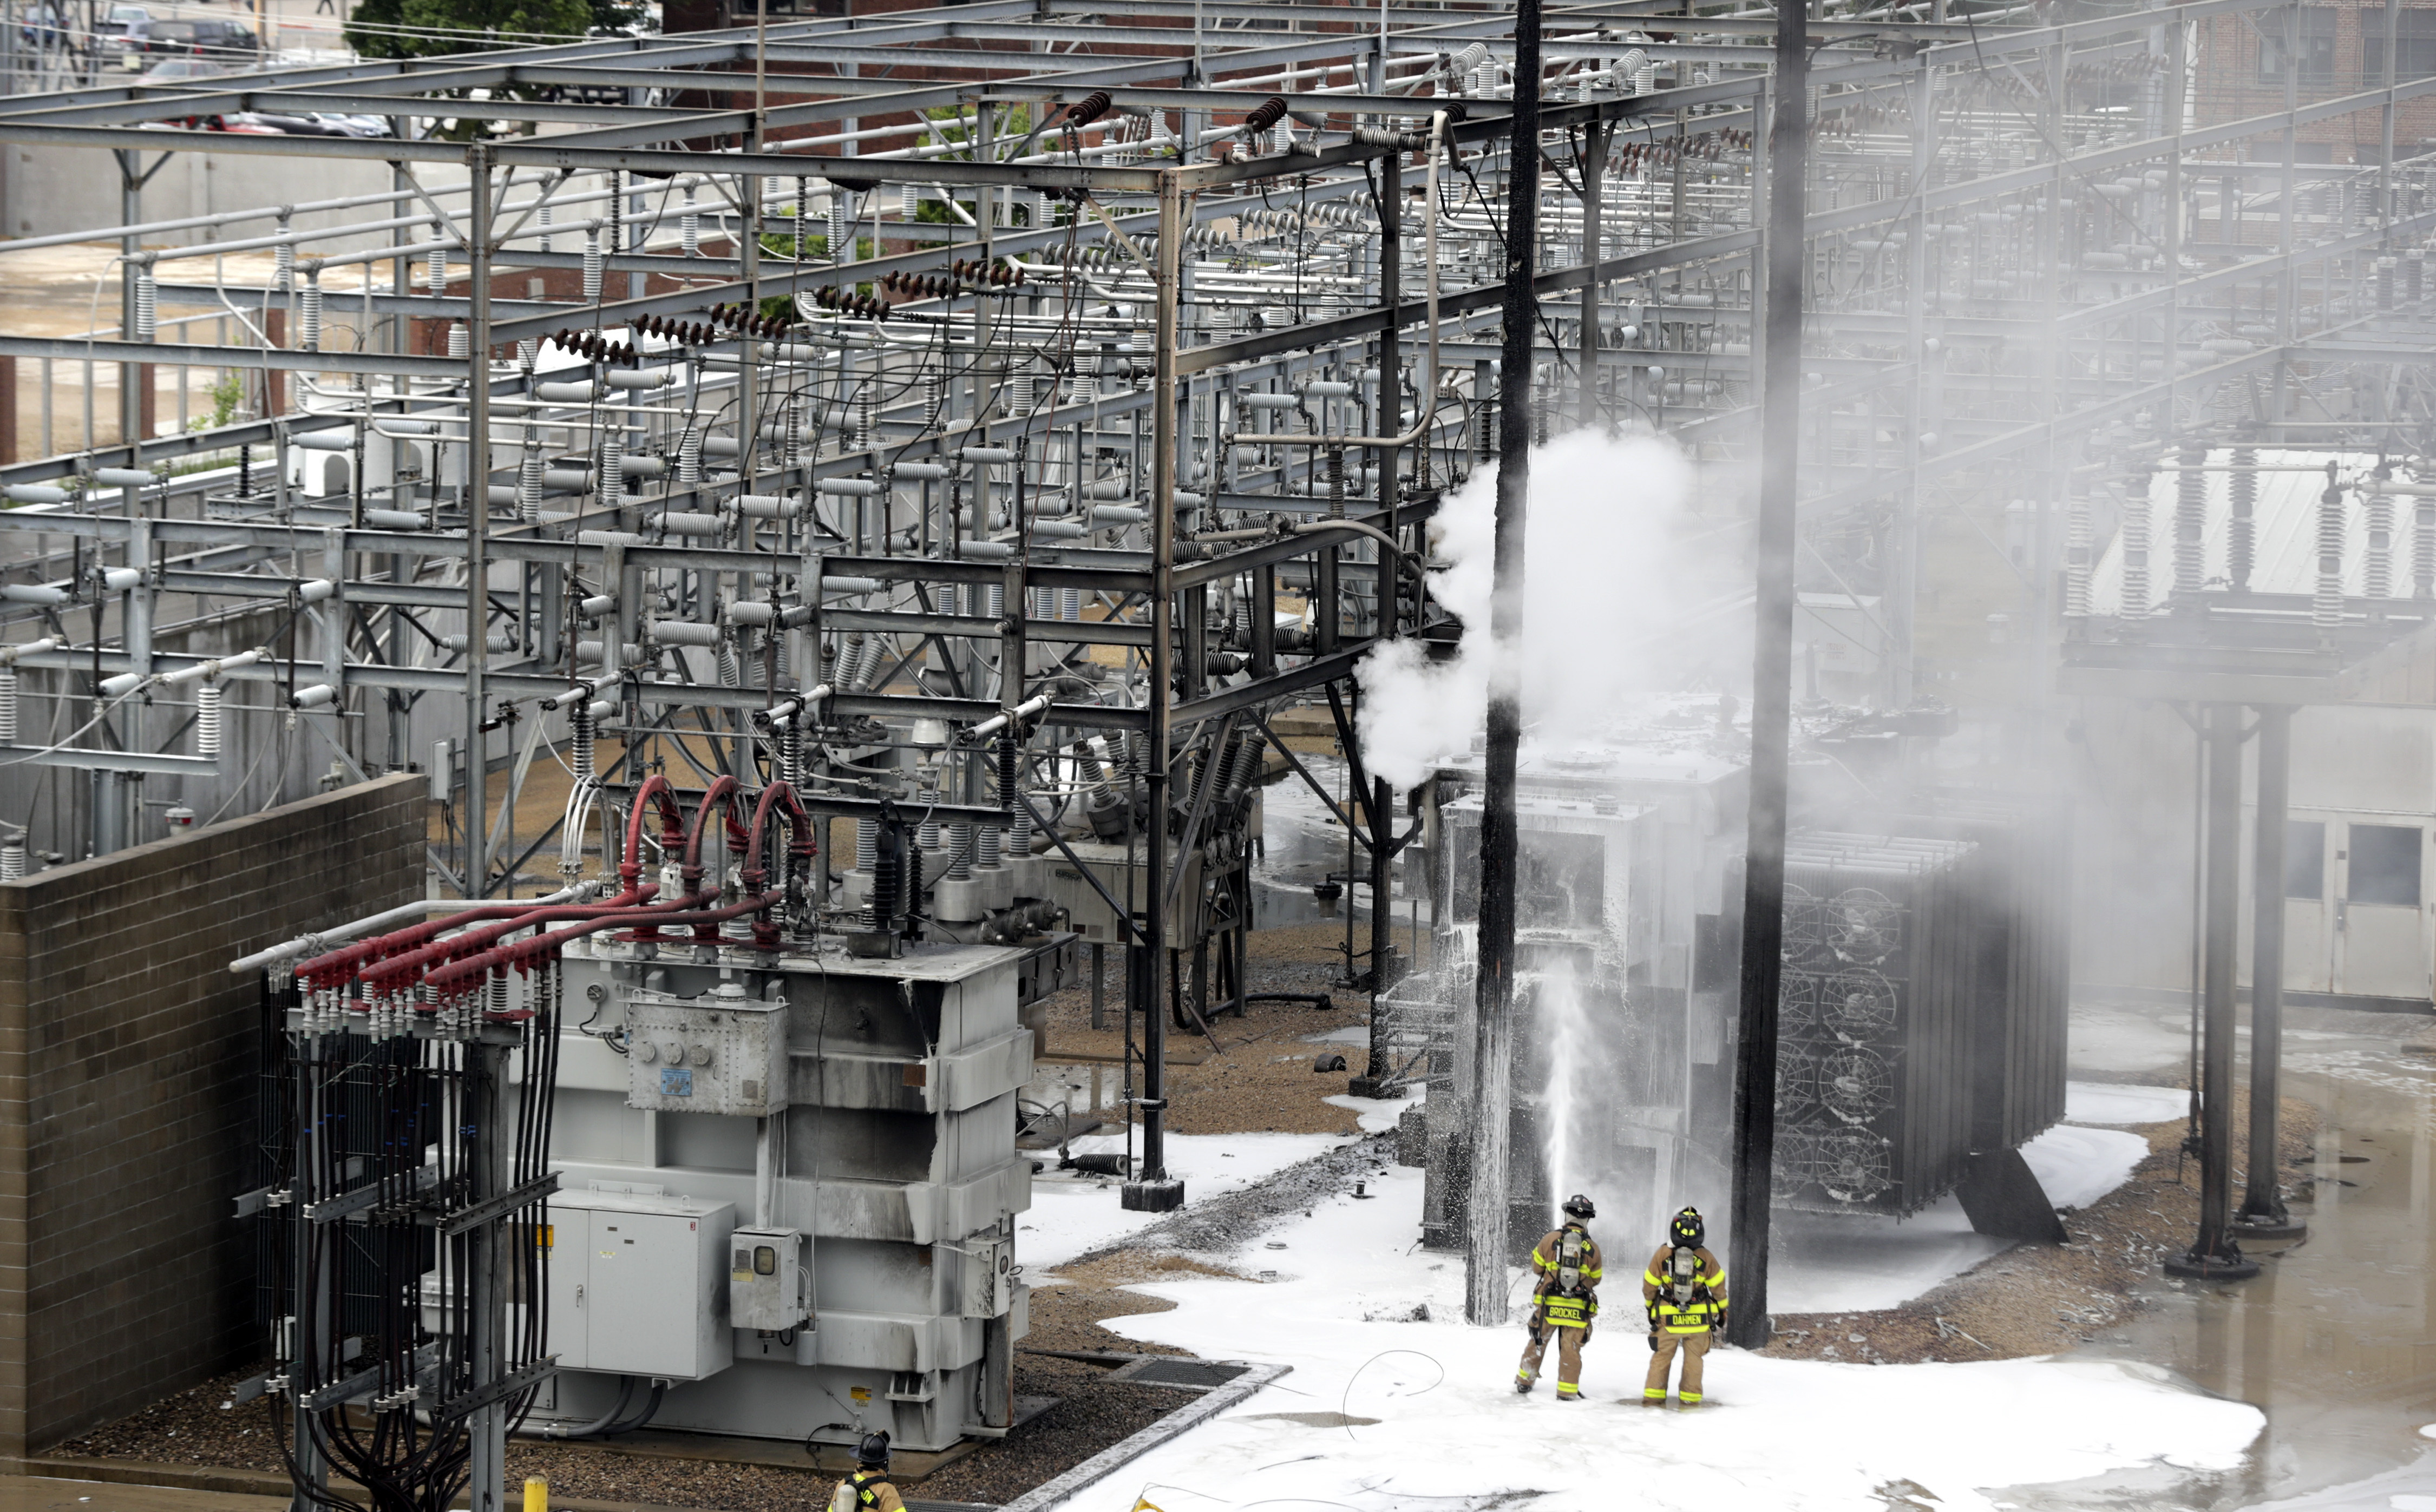 Power station fires knock out service on hot day in Madison